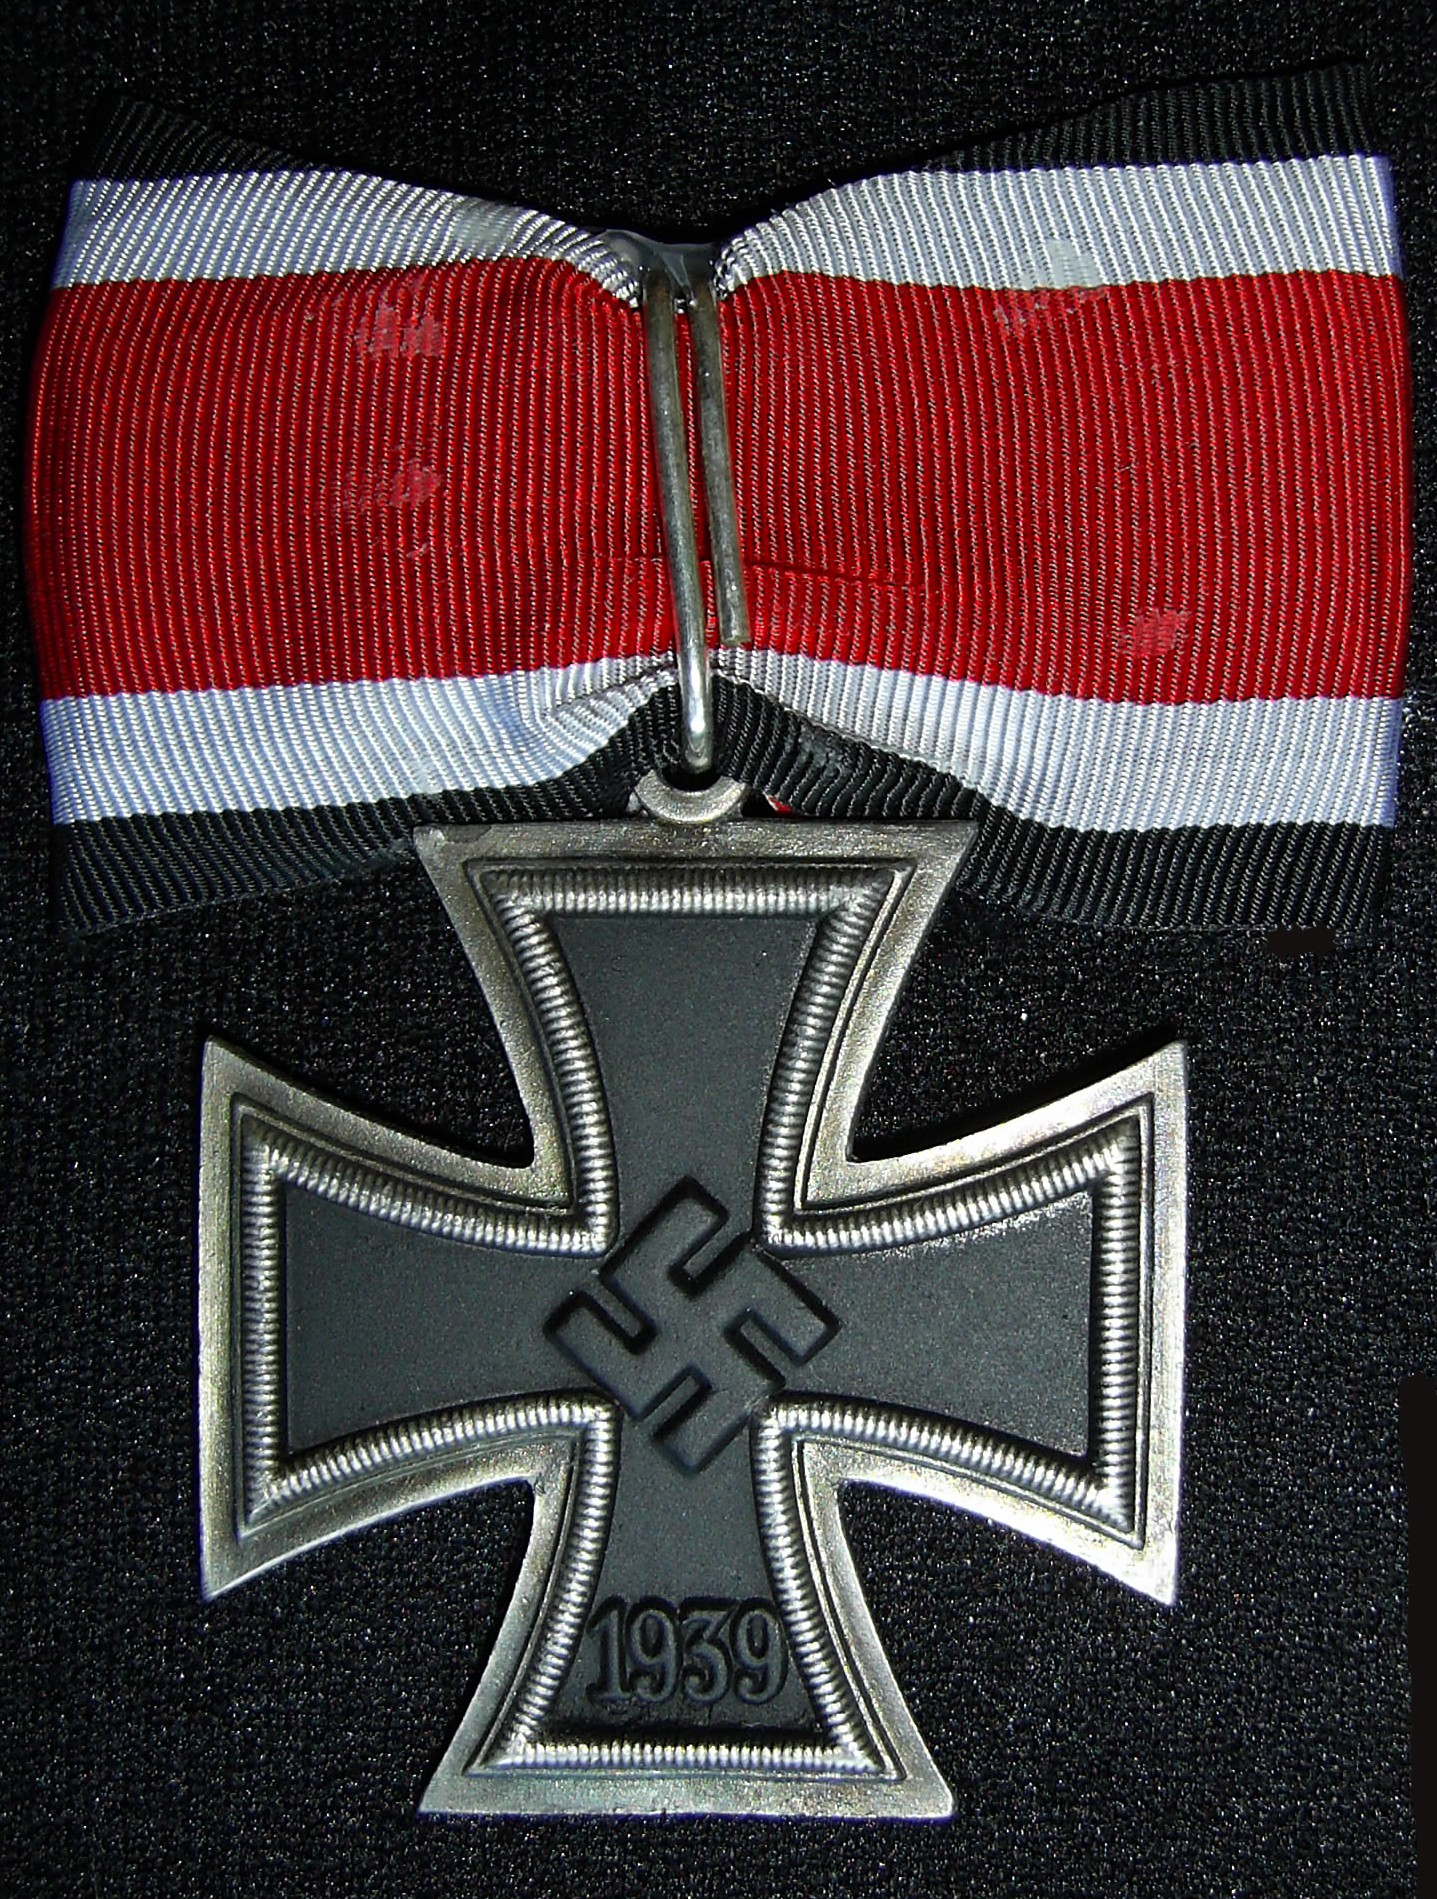 List of Knight's Cross of the Iron Cross with Oak Leaves